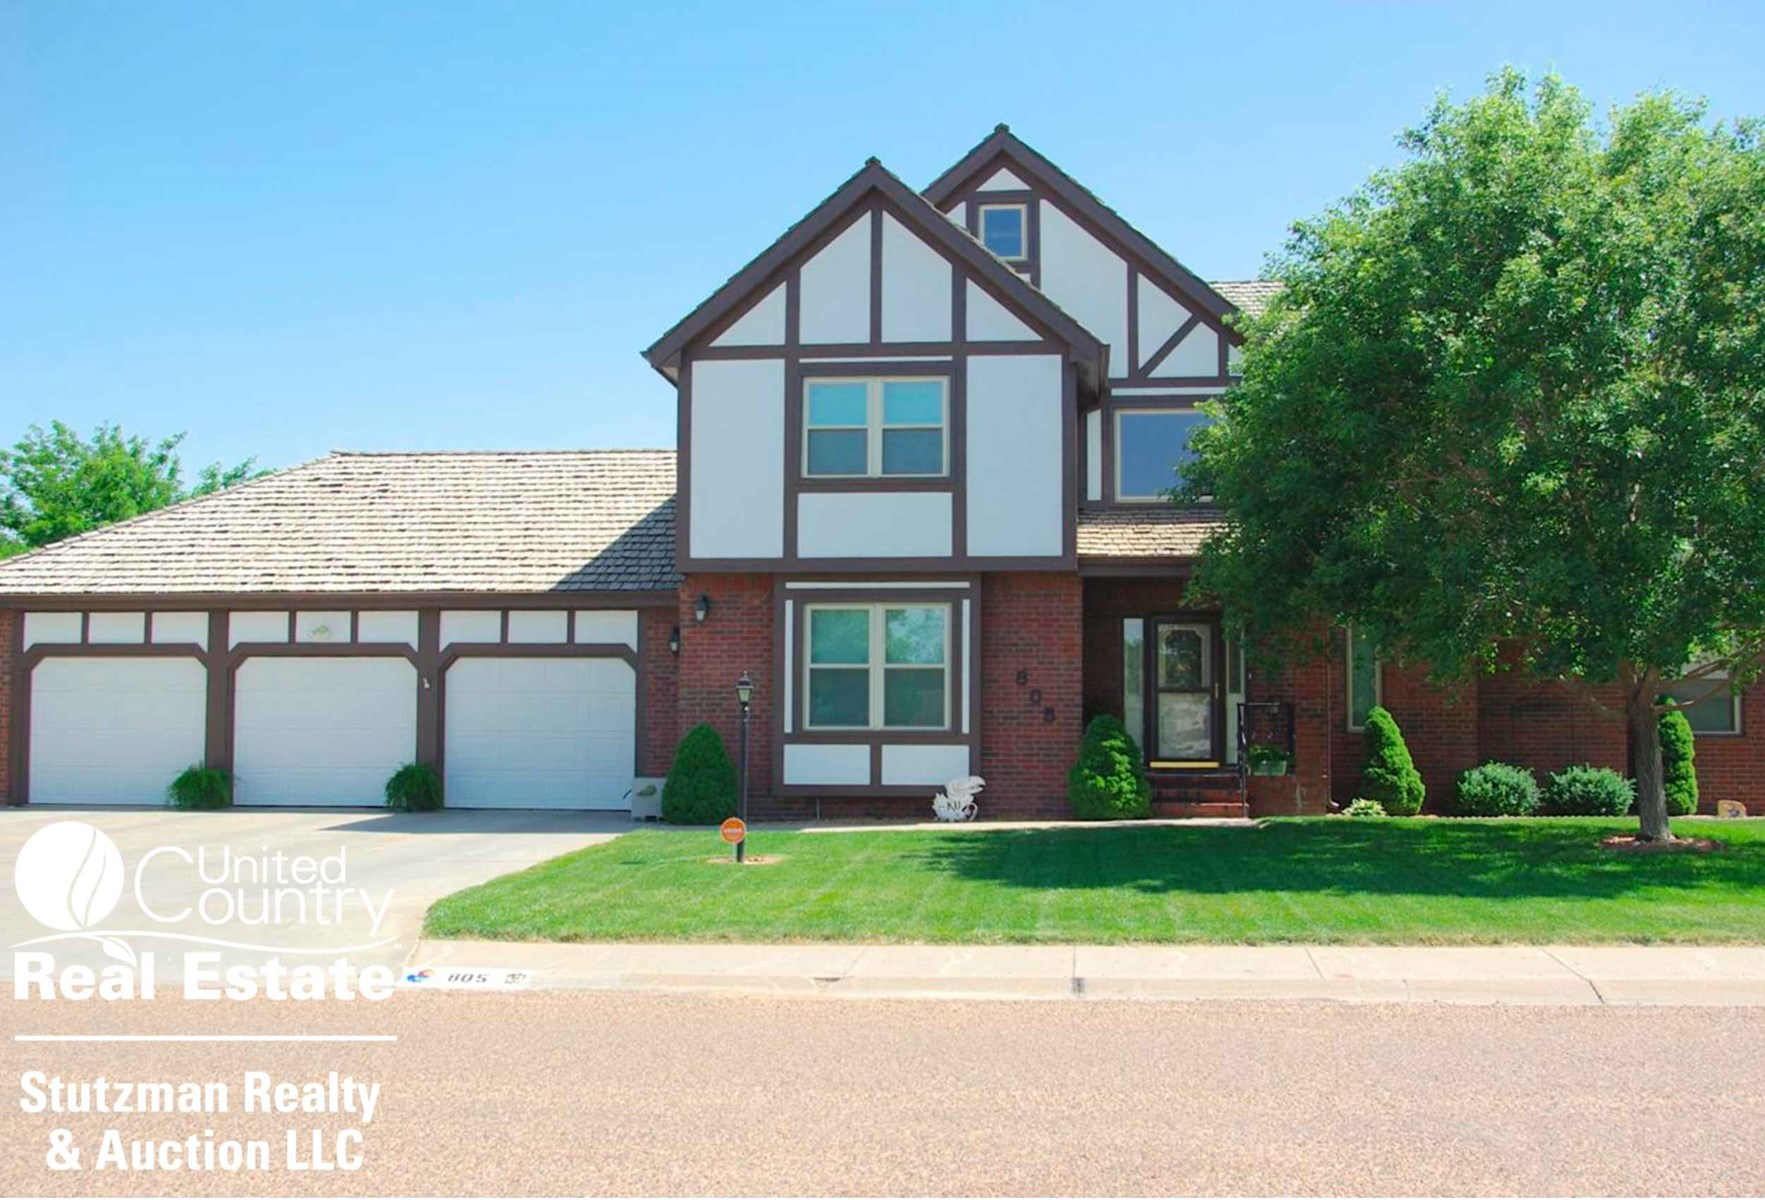 EXQUISITE 2 STORY HOME FOR SALE IN ULYSSES, KS